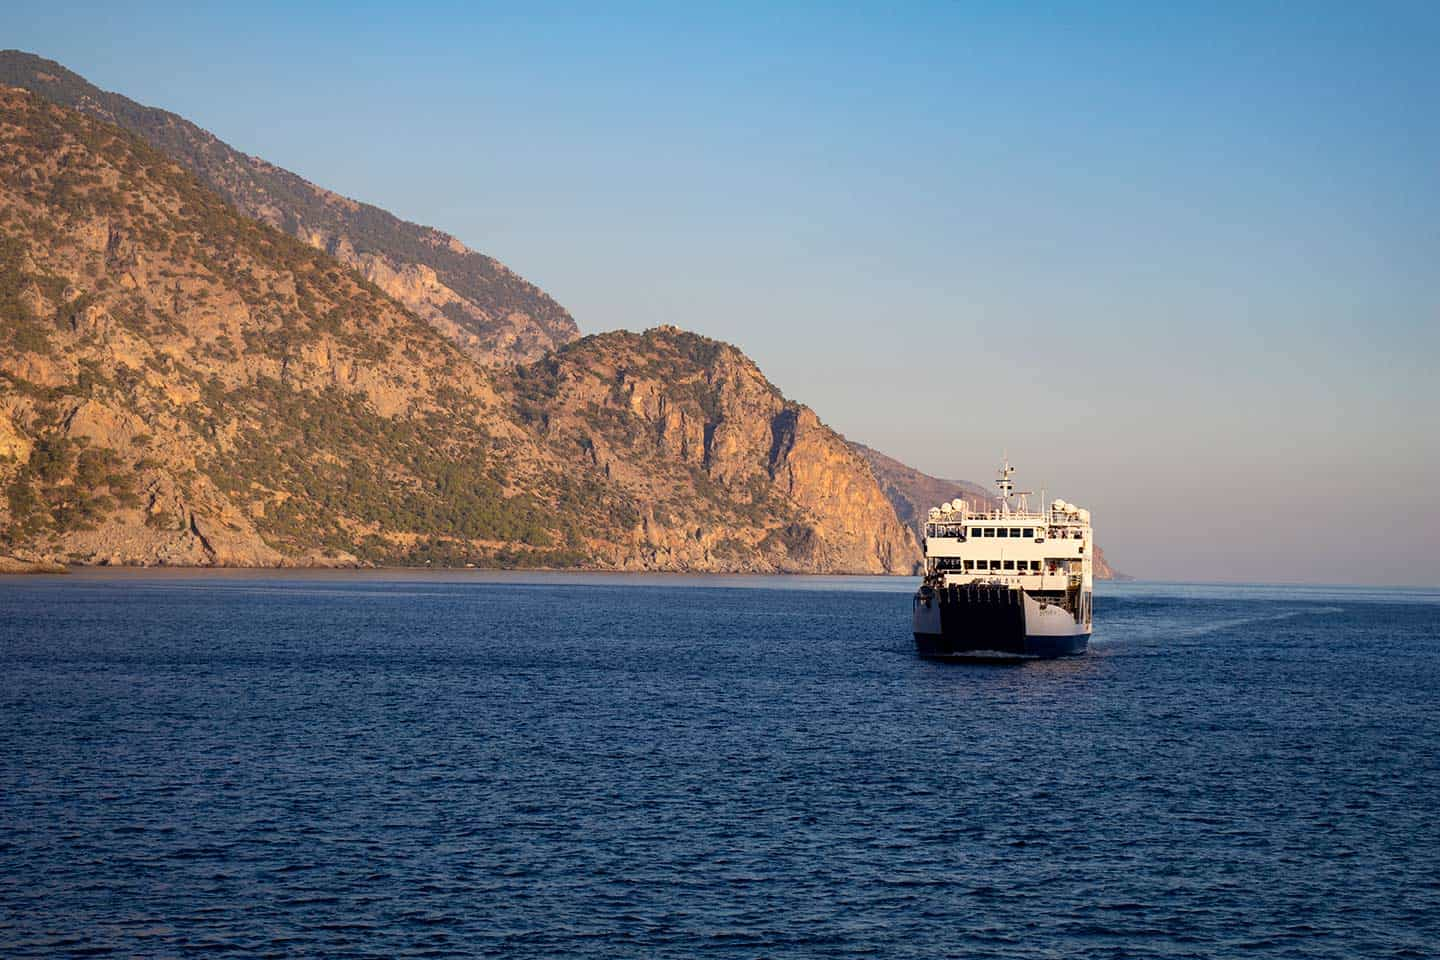 Image of the ferry to Paleochora from Sougia